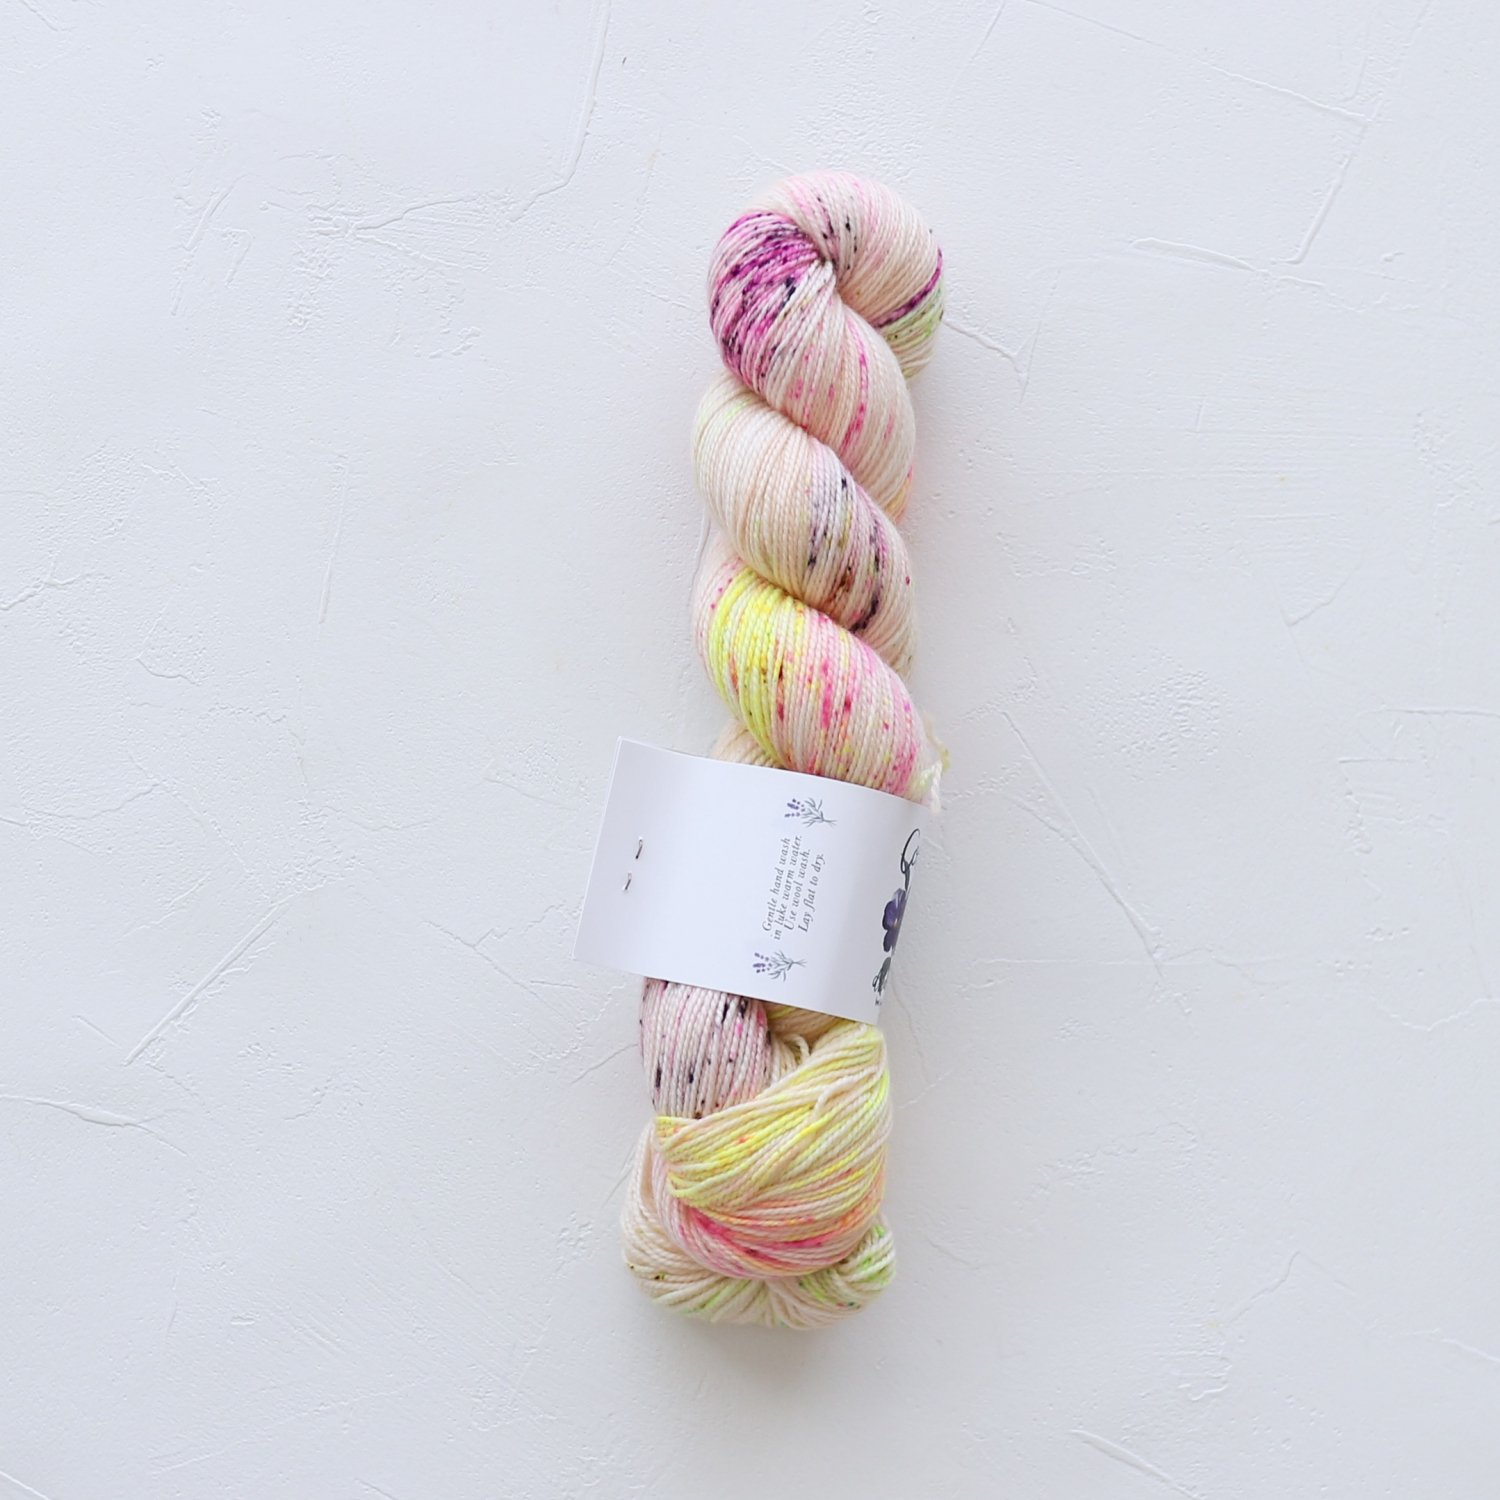 【Cosy Posy Yarn】<br>SOFT & COSY<br>Wildflower Graffiti